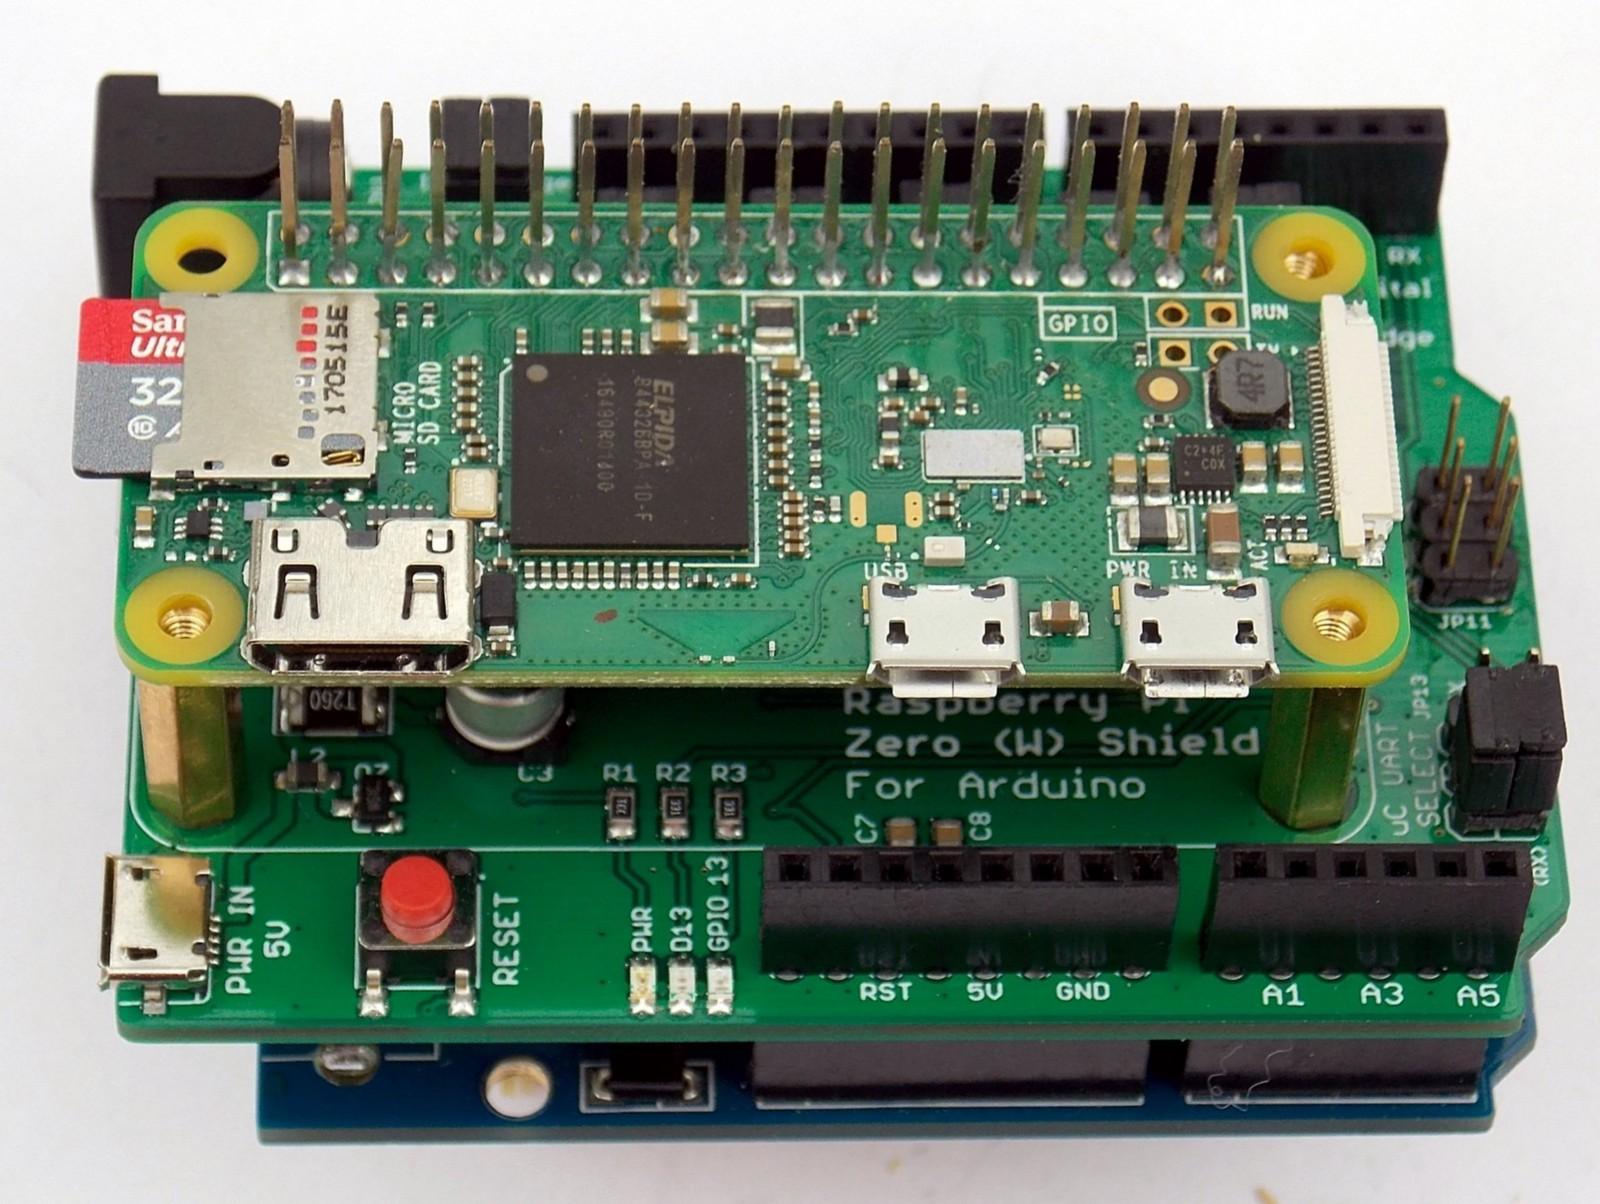 Connect the Raspberry Pi Zero to an Arduino with This Compatible Shield